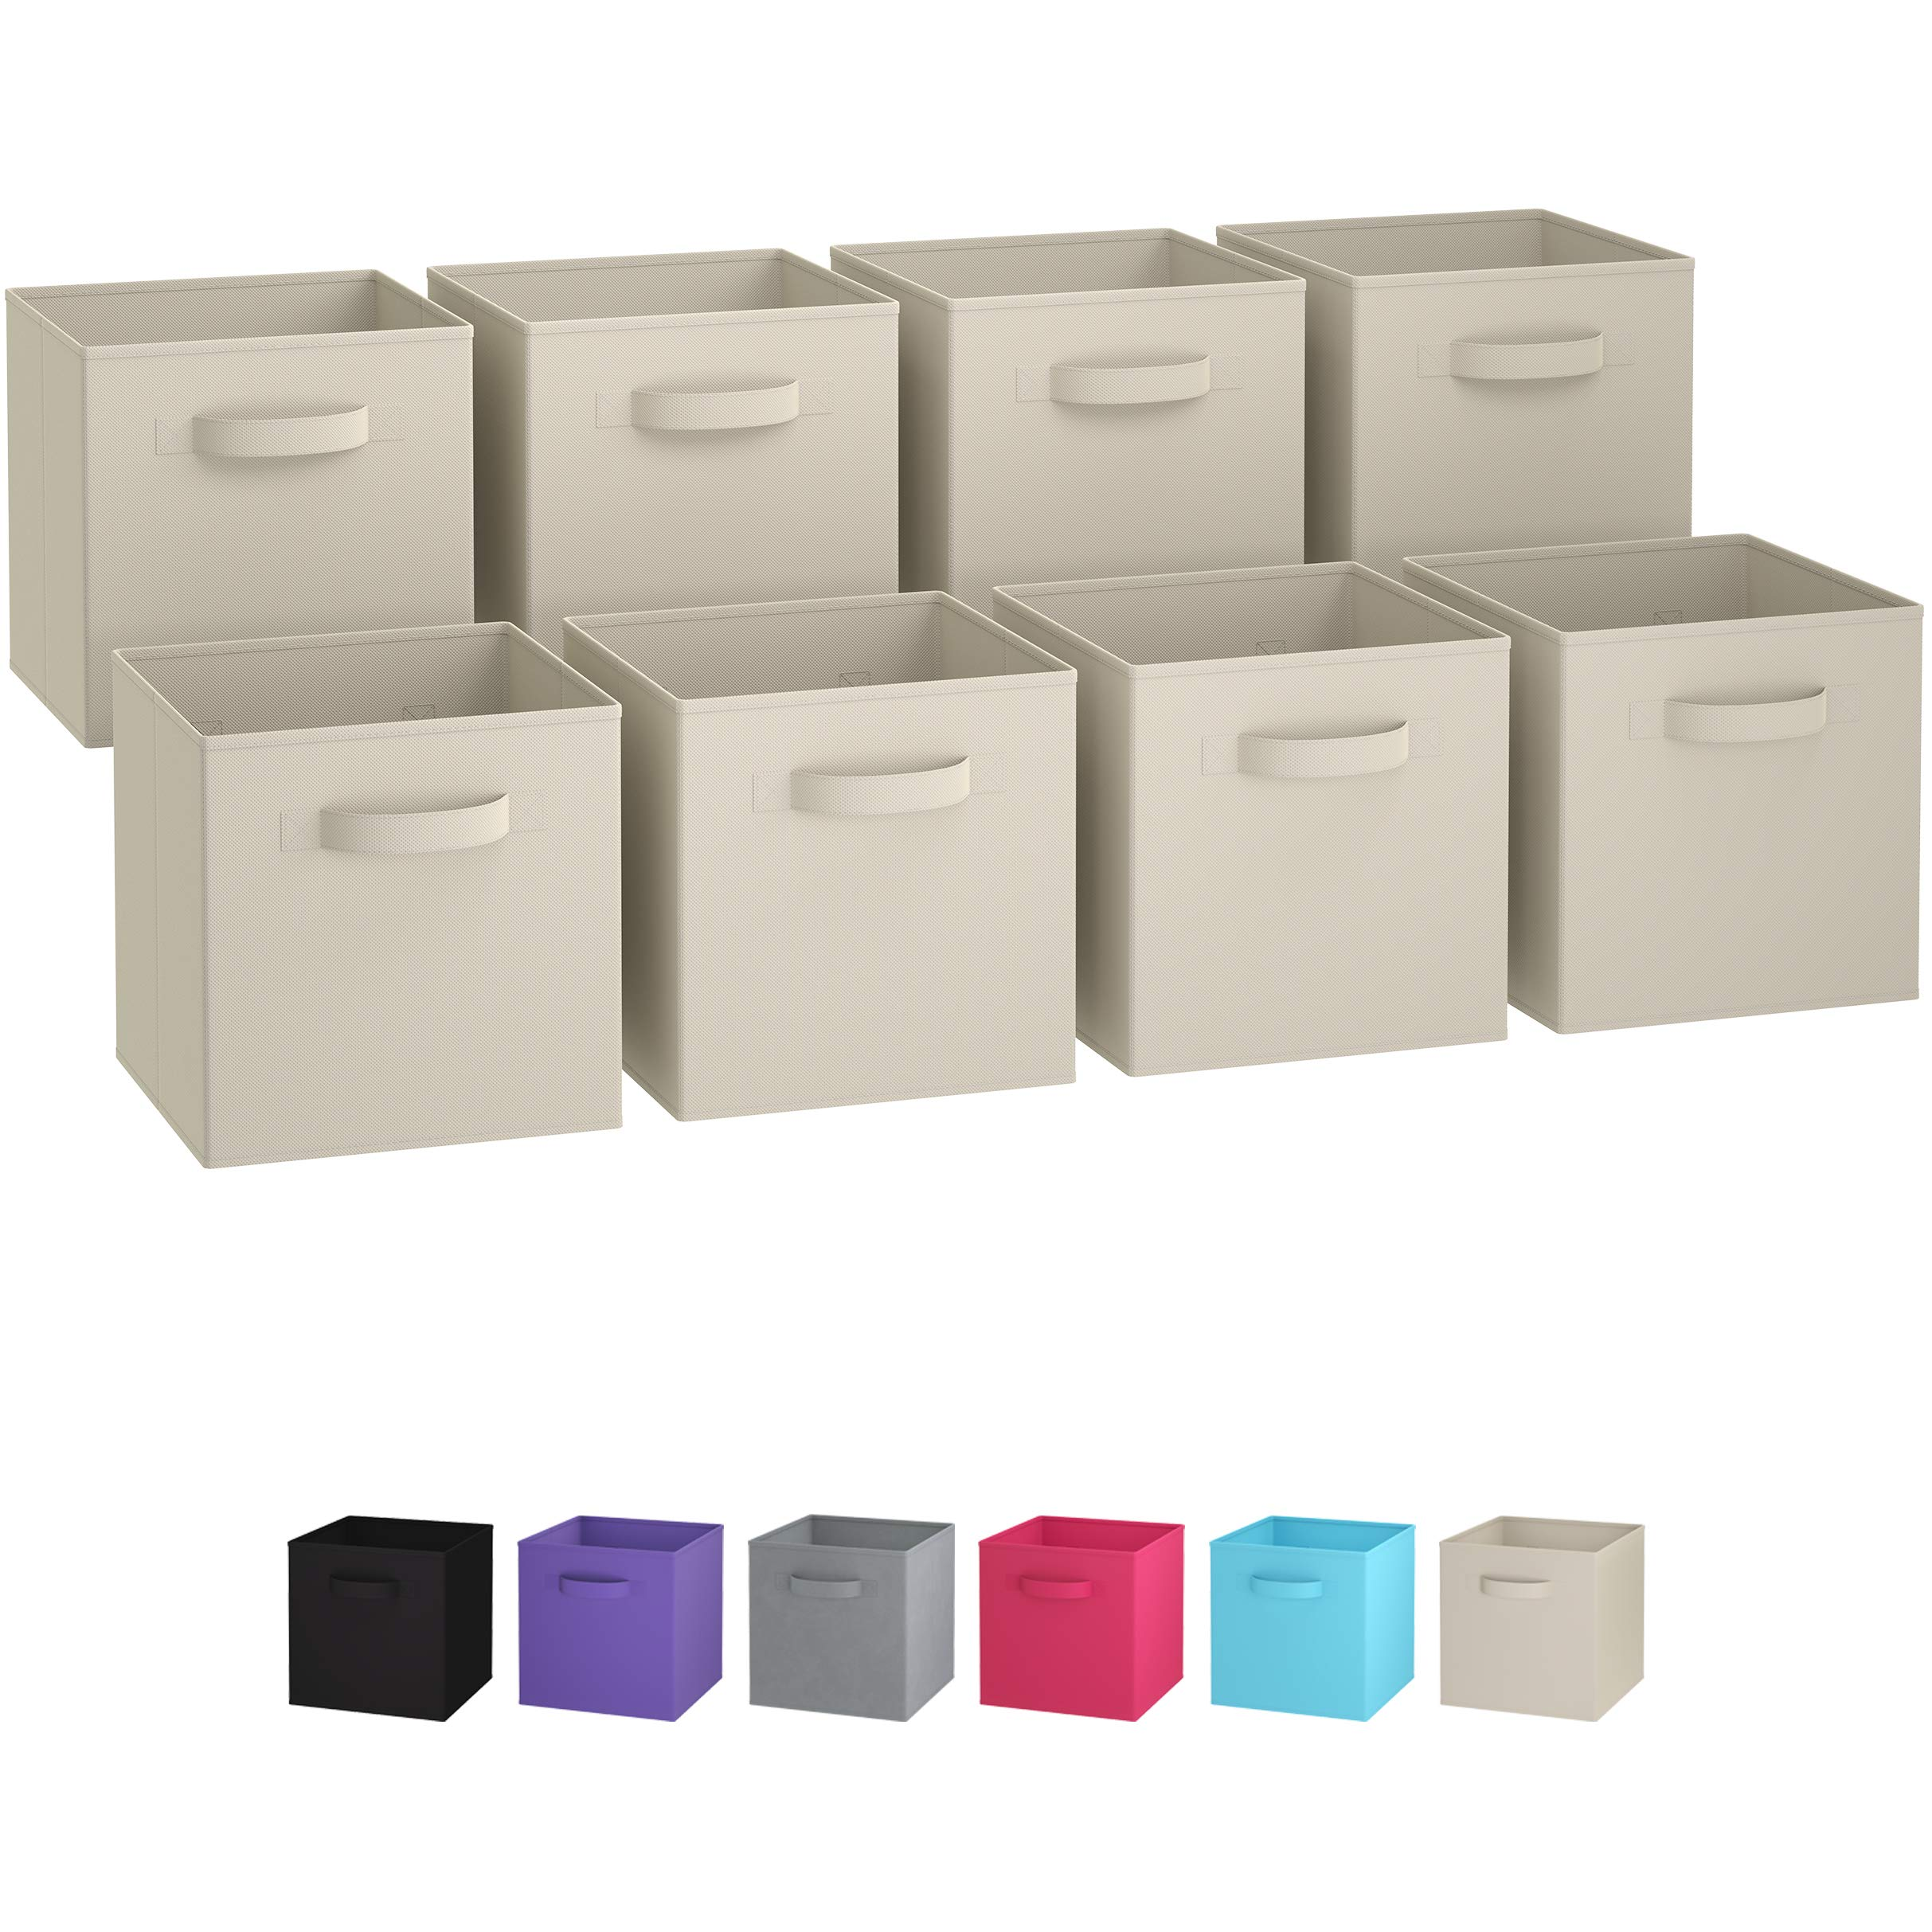 Royexe Set Of 8 Foldable Fabric Storage Cube Bins | Collapsible Cloth  Organizer Baskets Containers | Folding Nursery Closet Drawer | Features  Dual Handles ...